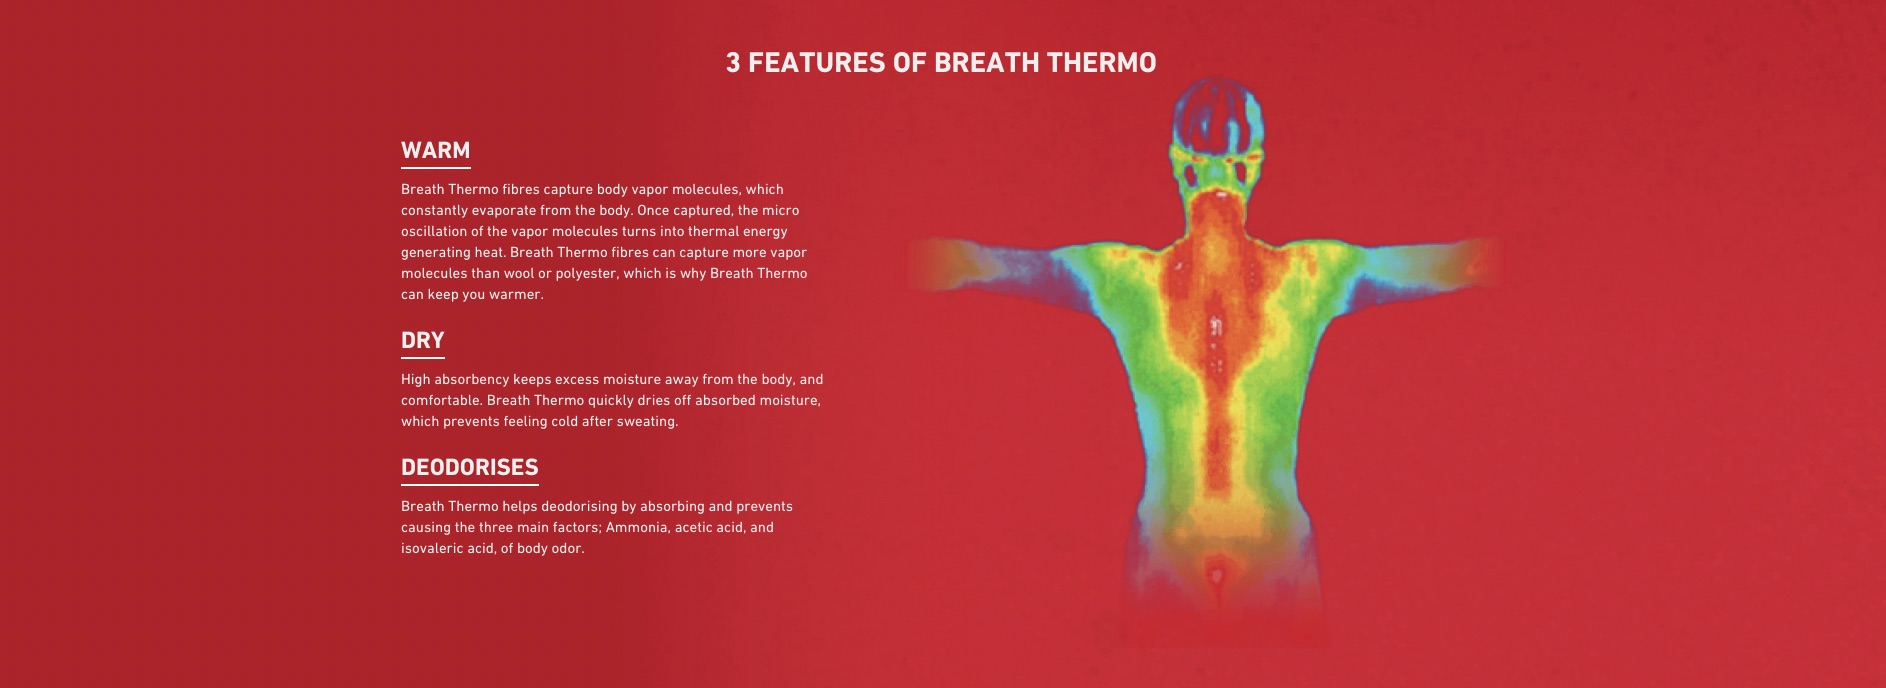 Features of Mizuno breath thermo